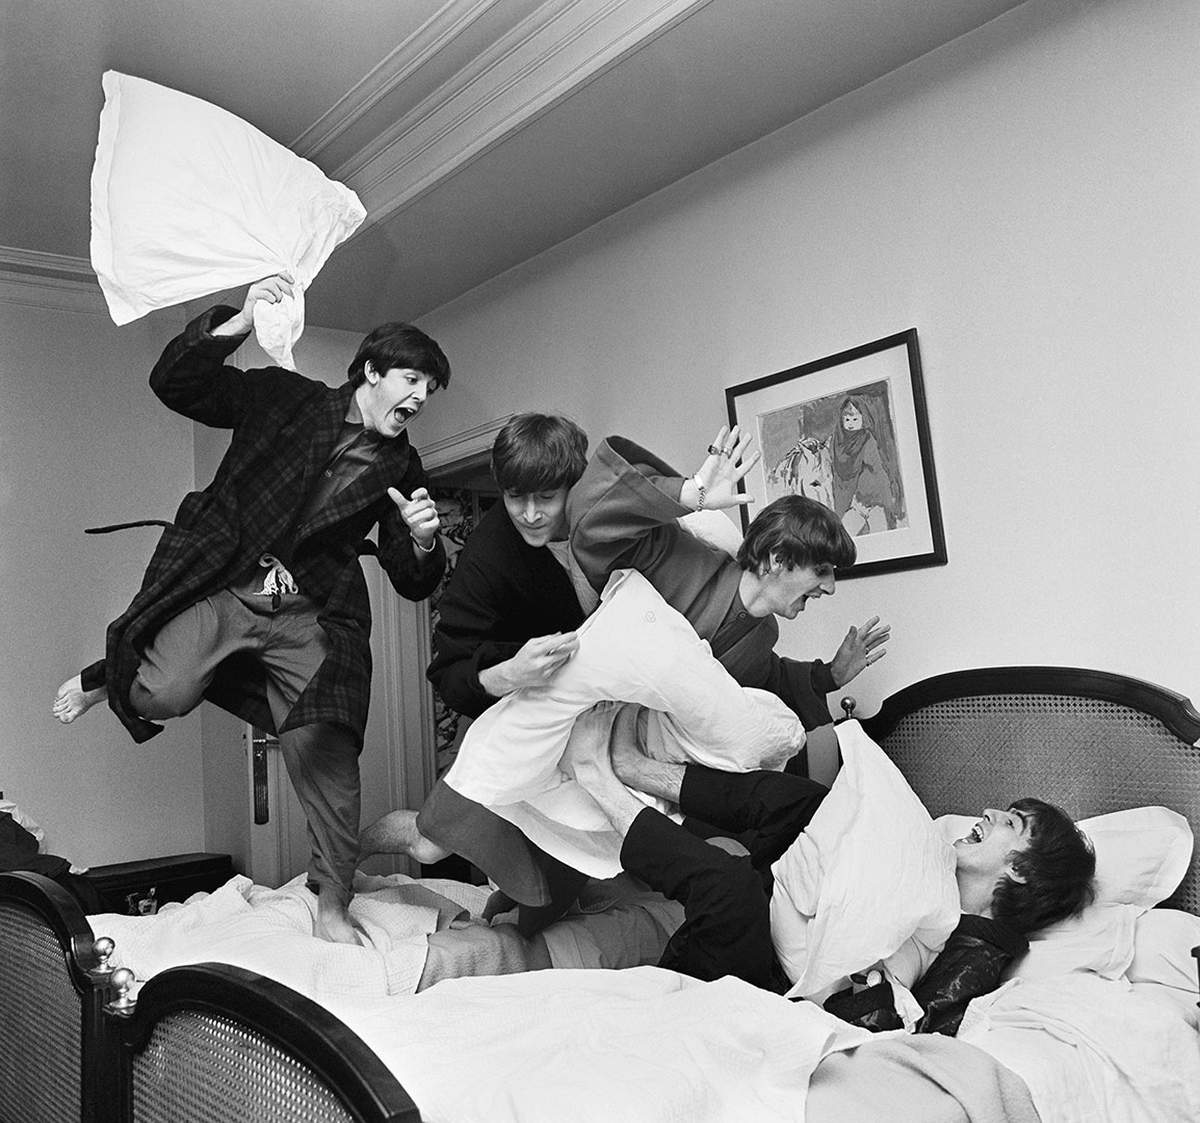 Harry Benson, The Beatles-Pillow Fight, 1964, Archival Fiber-Based Pigment Print112x112cm, Edition: 22/35, Courtesy: Harry Benson